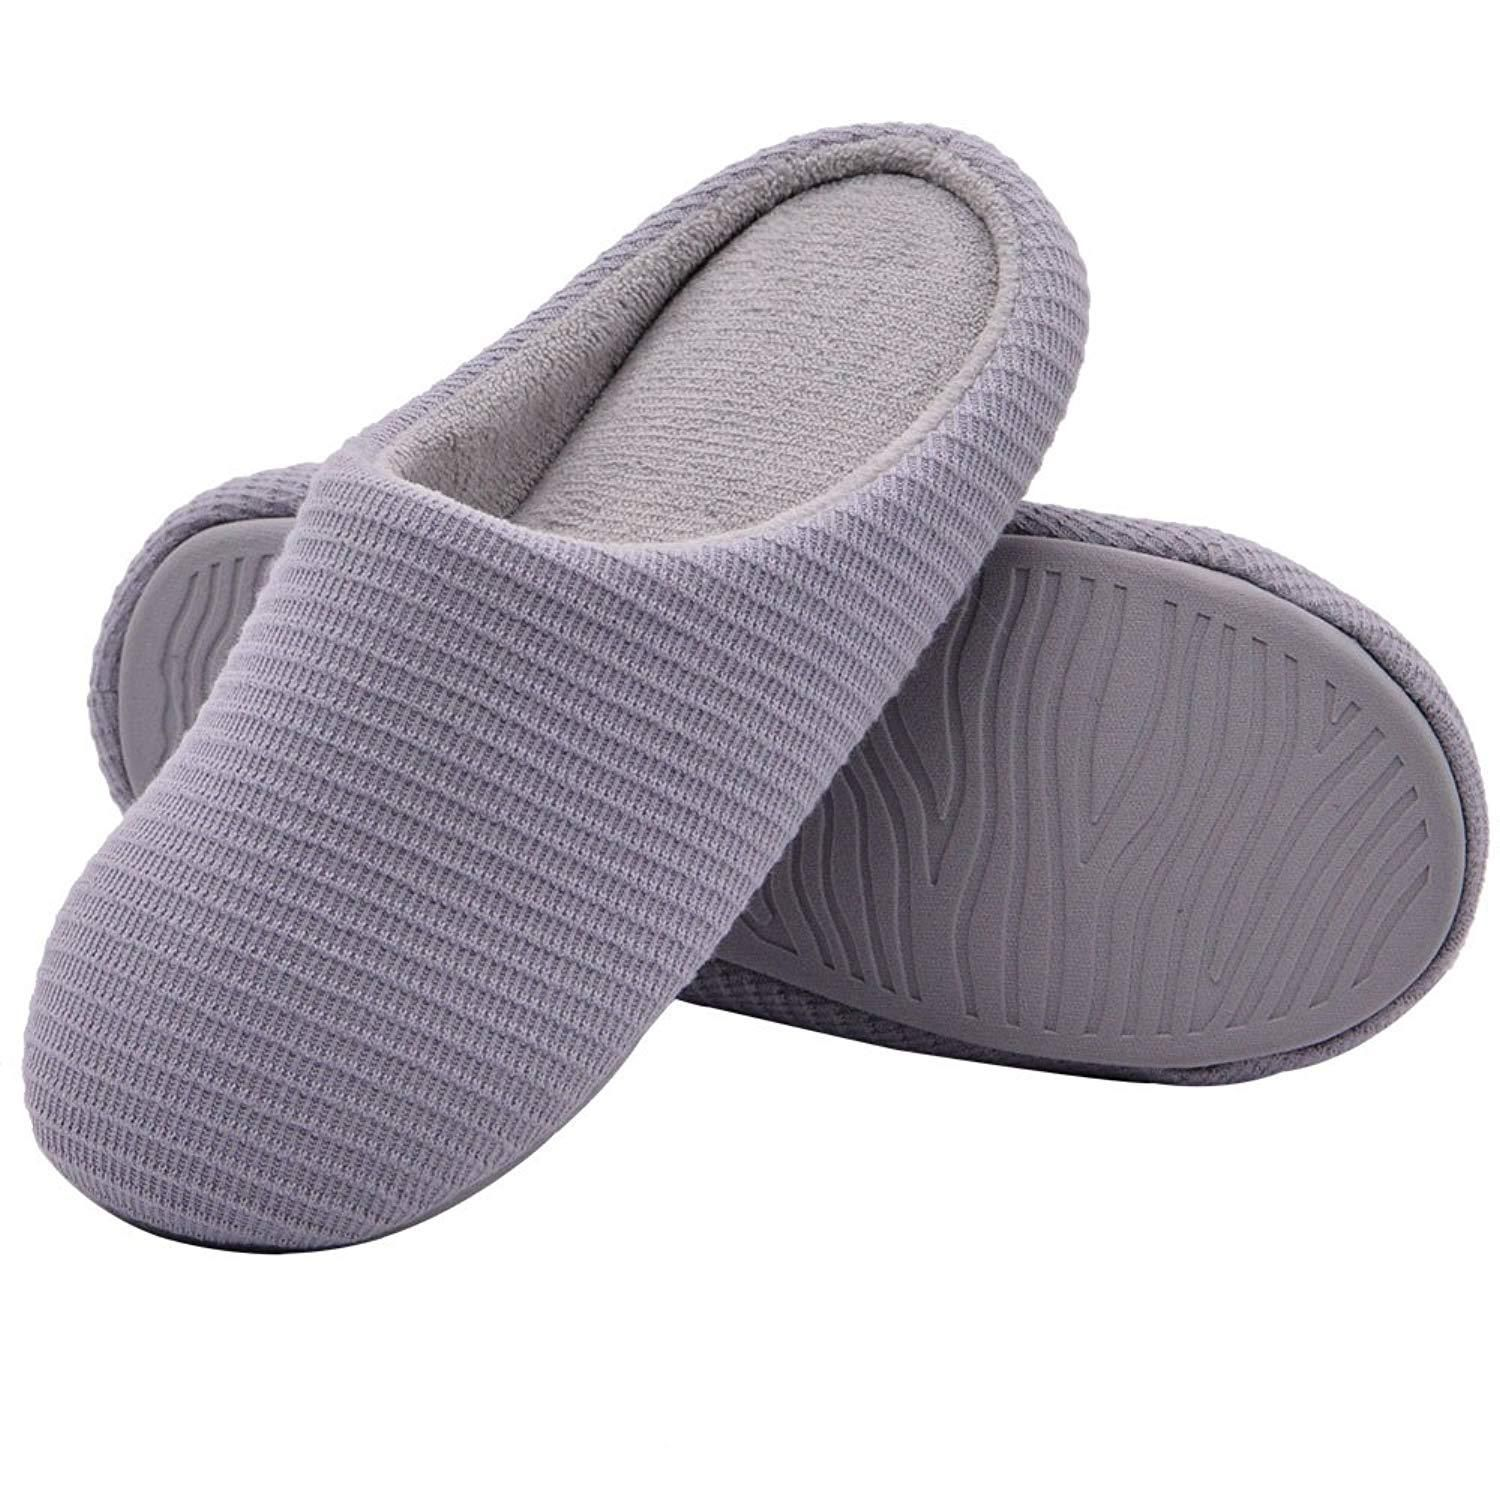 8d15dba94a10de KUIBU Unisex Couples Kids Antiskid Slide Scuff Indoor Home Flat Mules Flax Hemp  Slippers Sandals Footwear ...